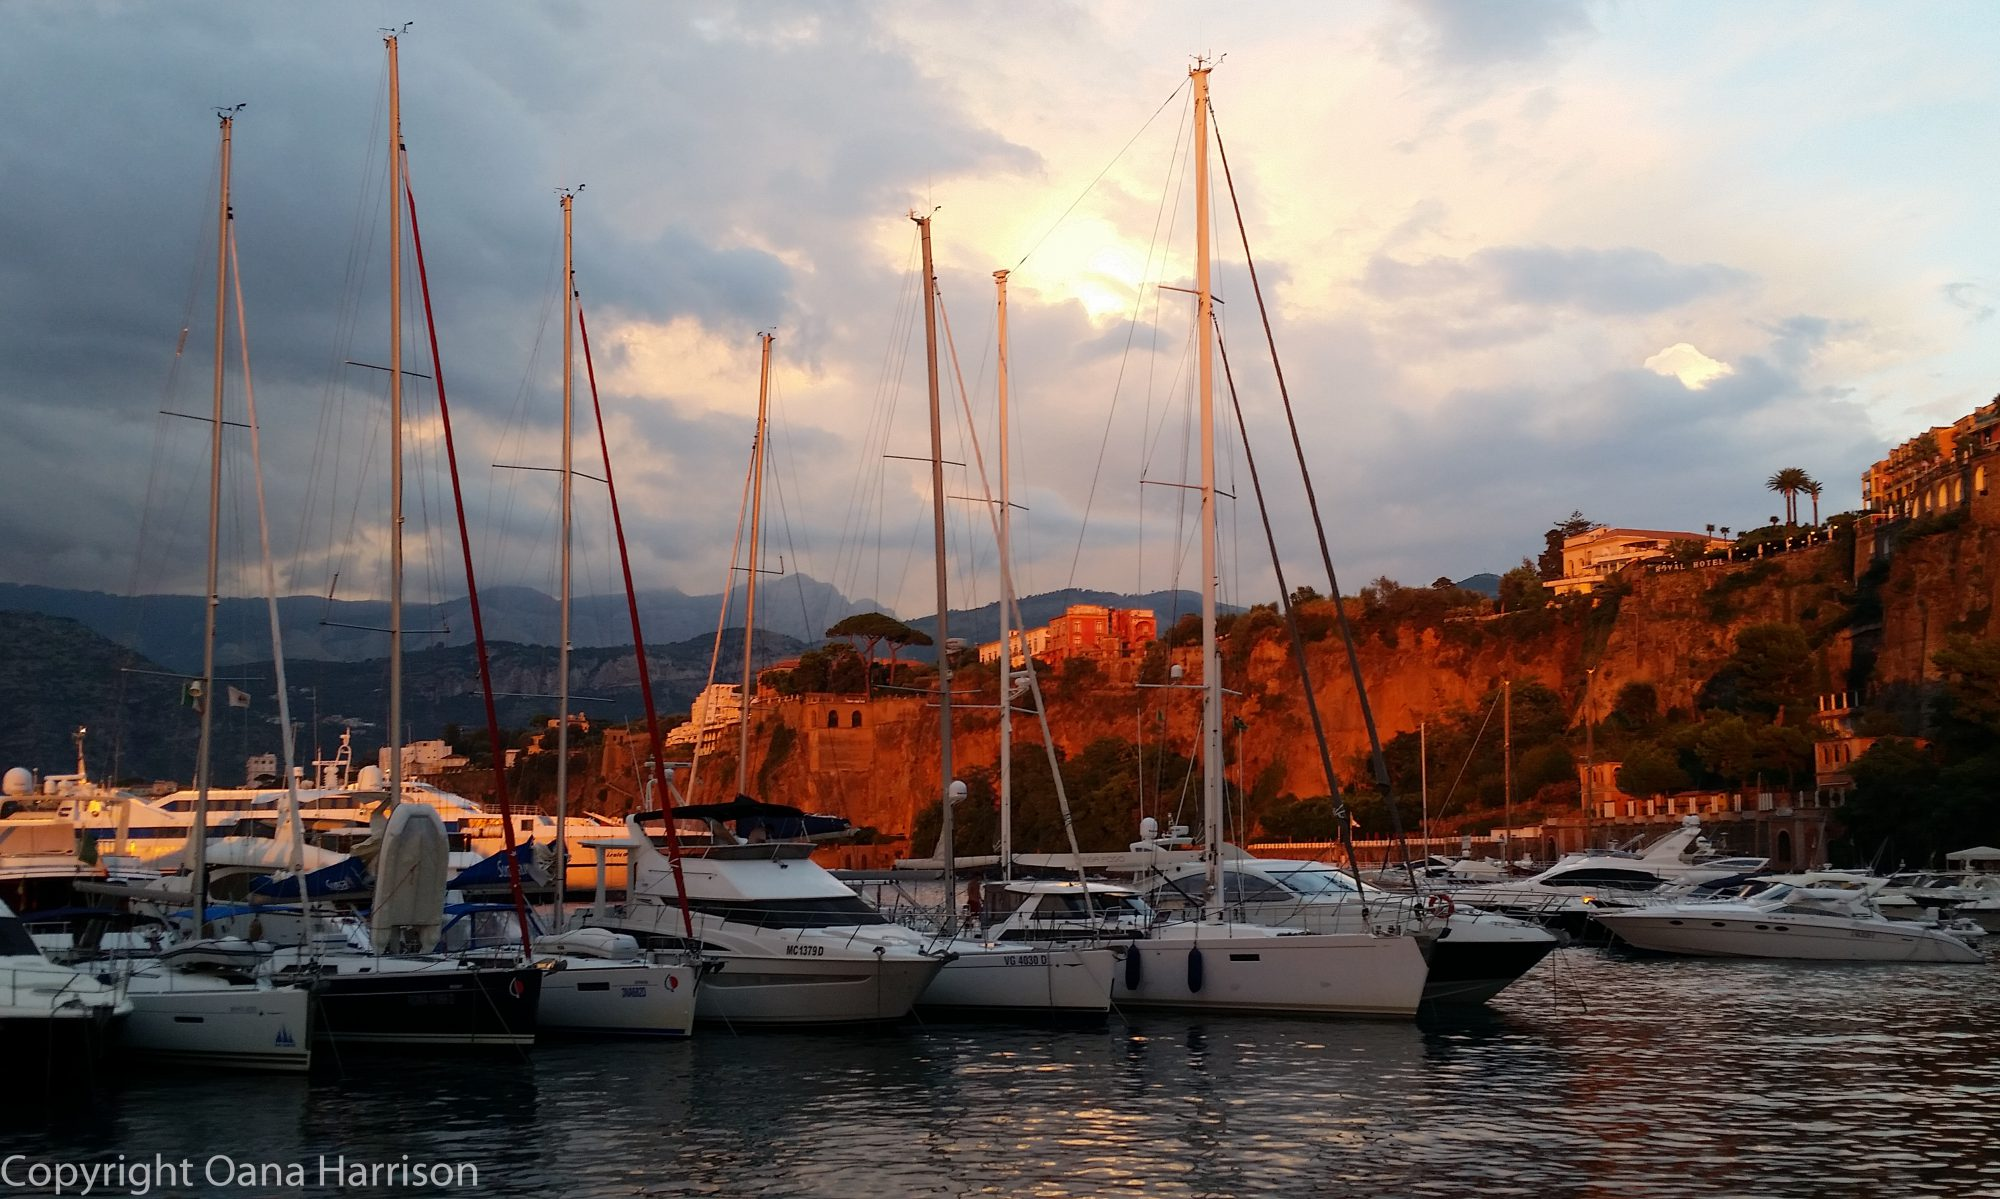 Sorrento, Italy sunset in the marina - Oana Harrison